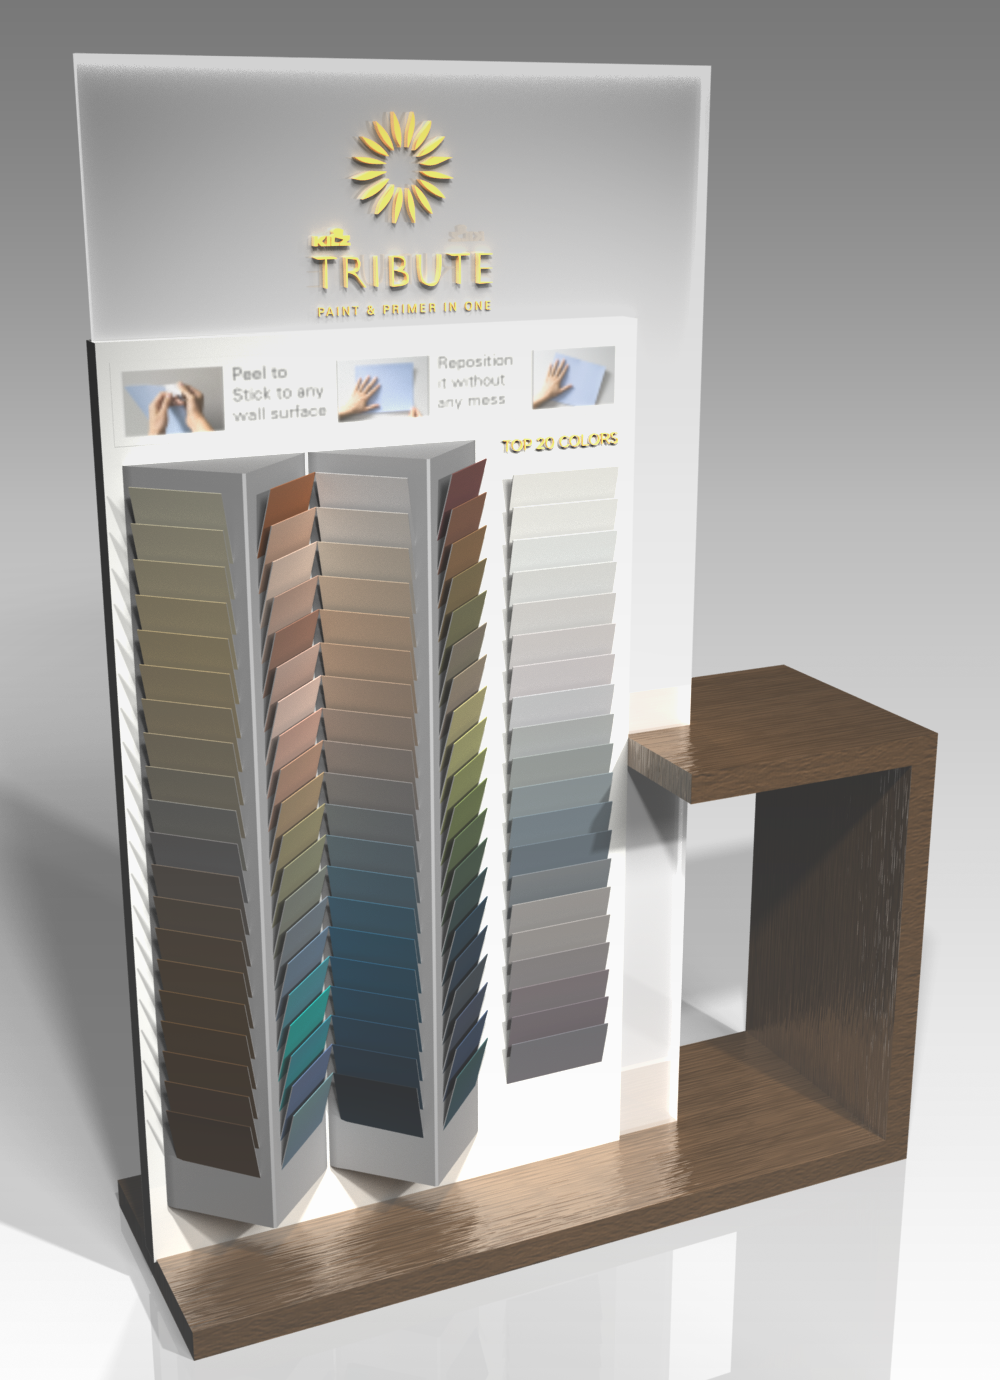 KILZ® TRIBUTE™ PAINT - FLOORING AMERICA KIOSK